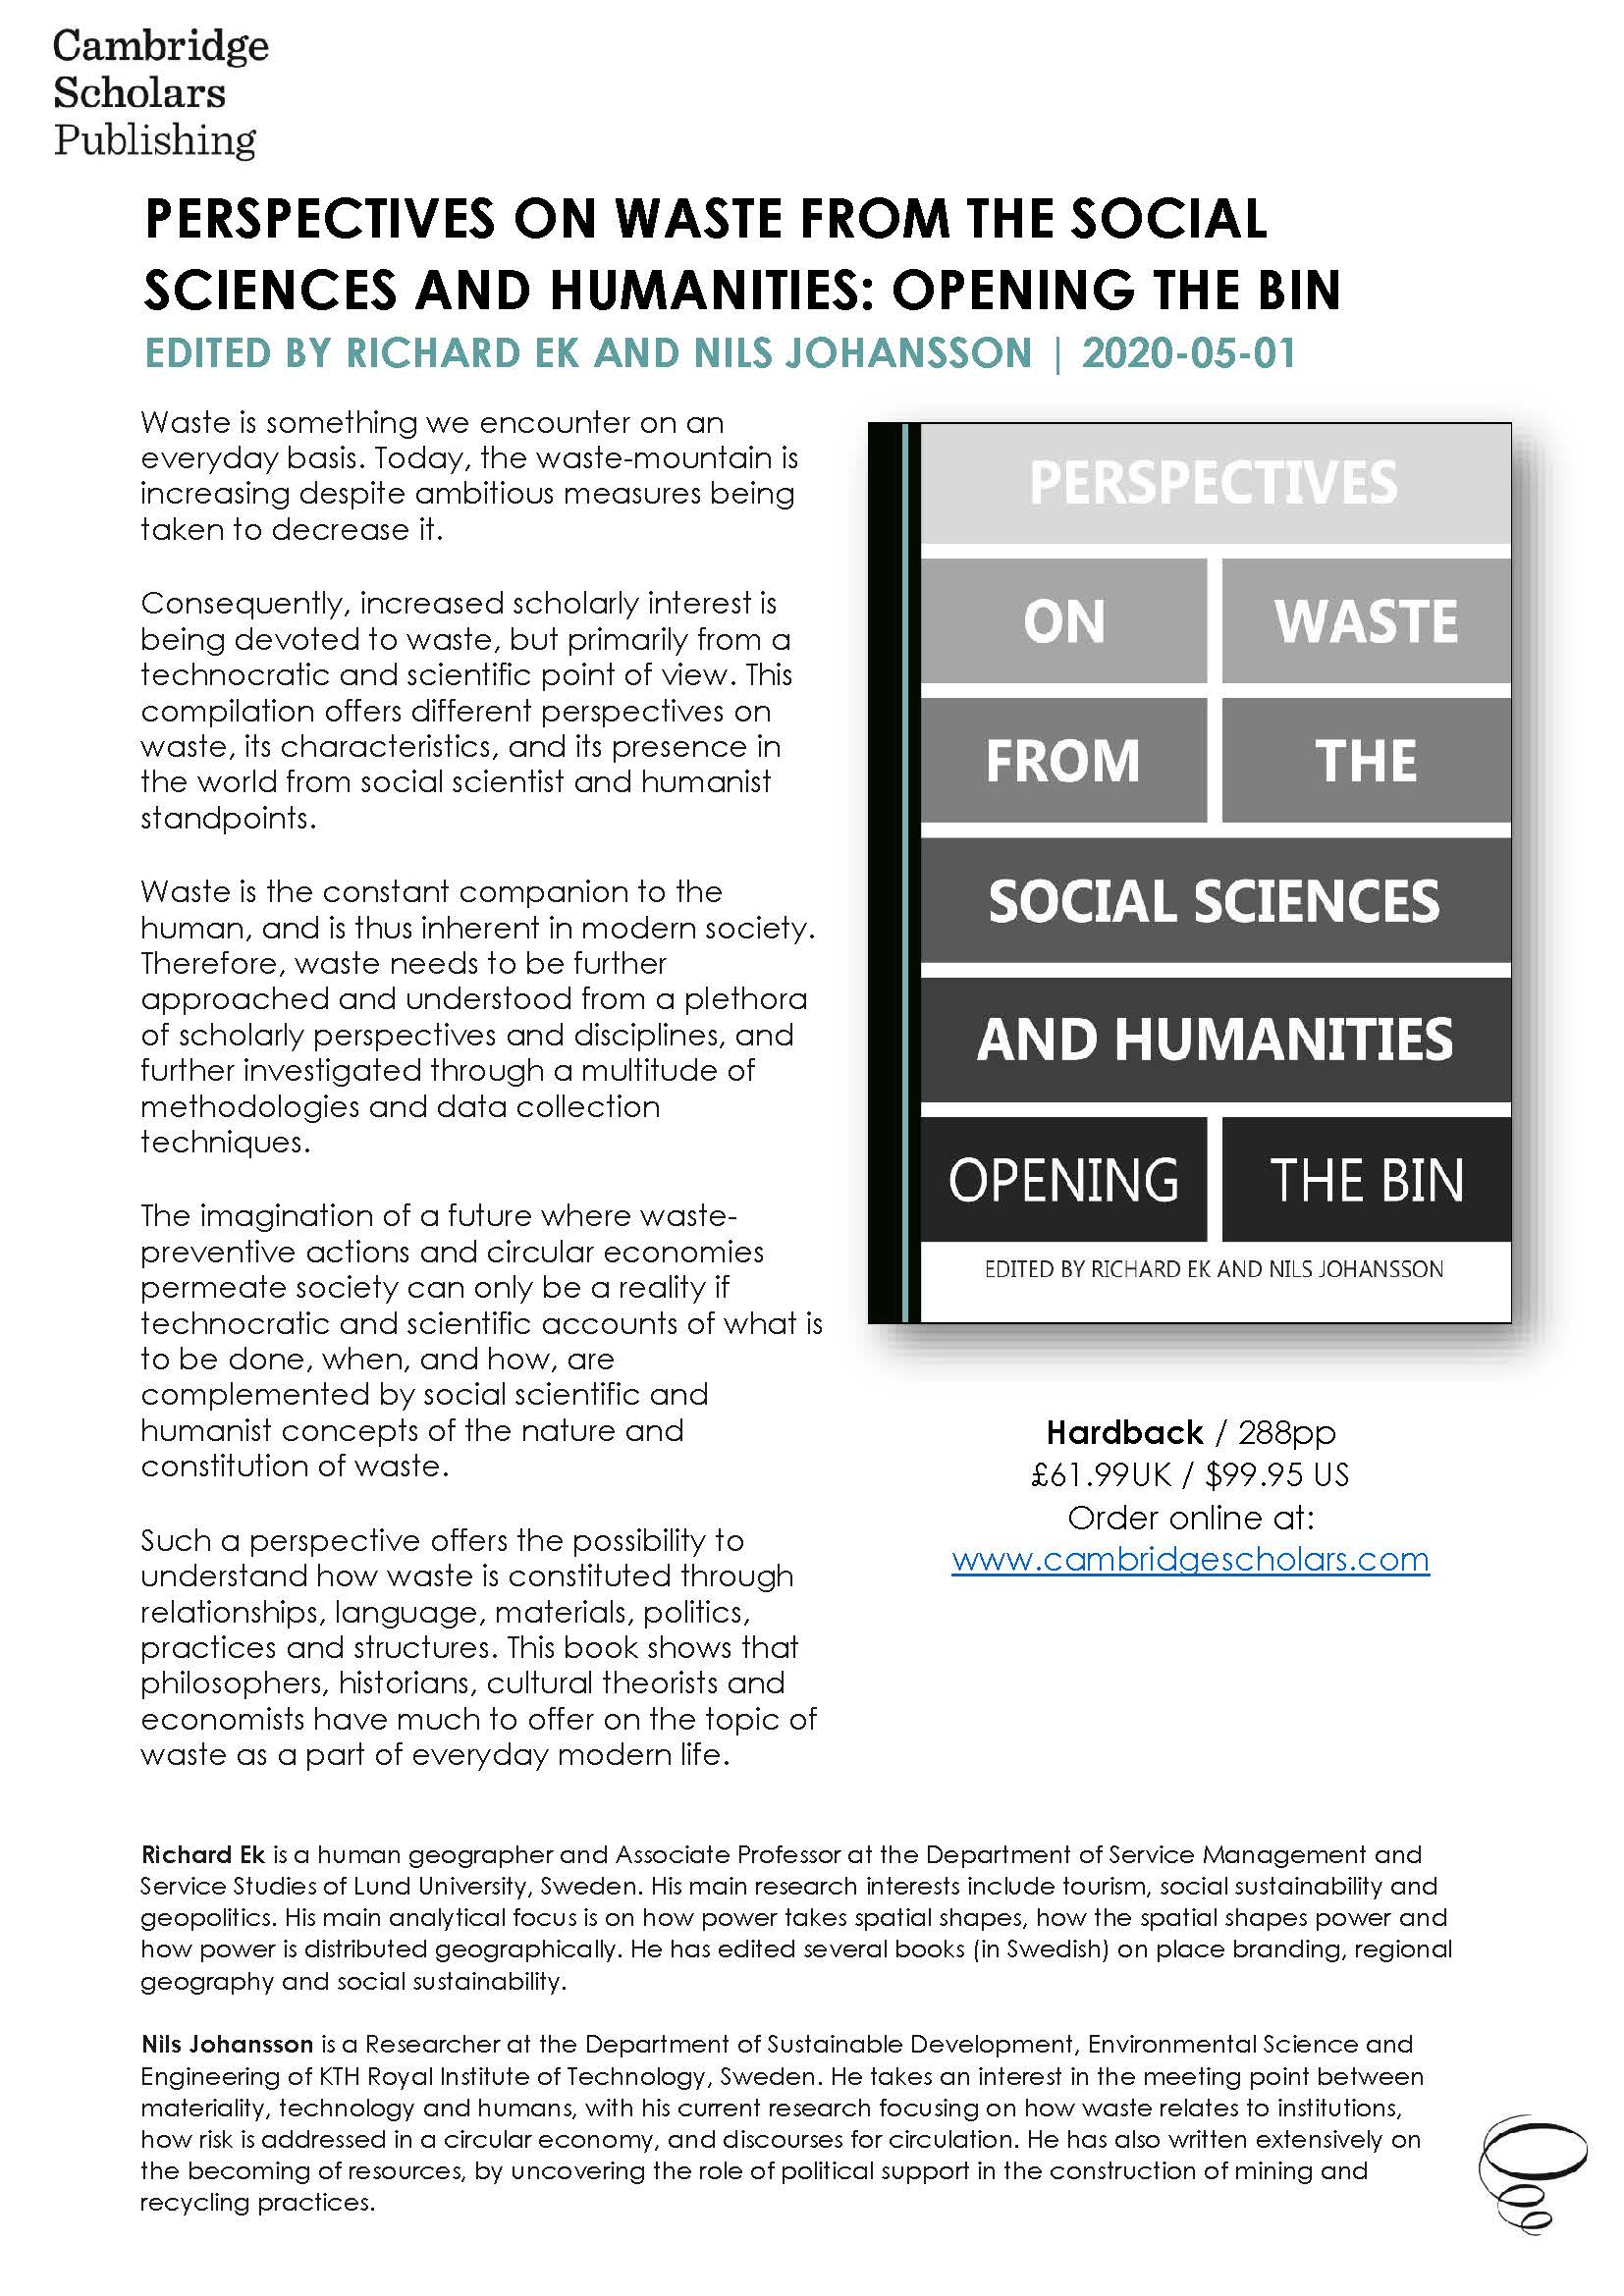 Perspectives on Waste from the Social Sciences and Humanities Opening the Bin AI